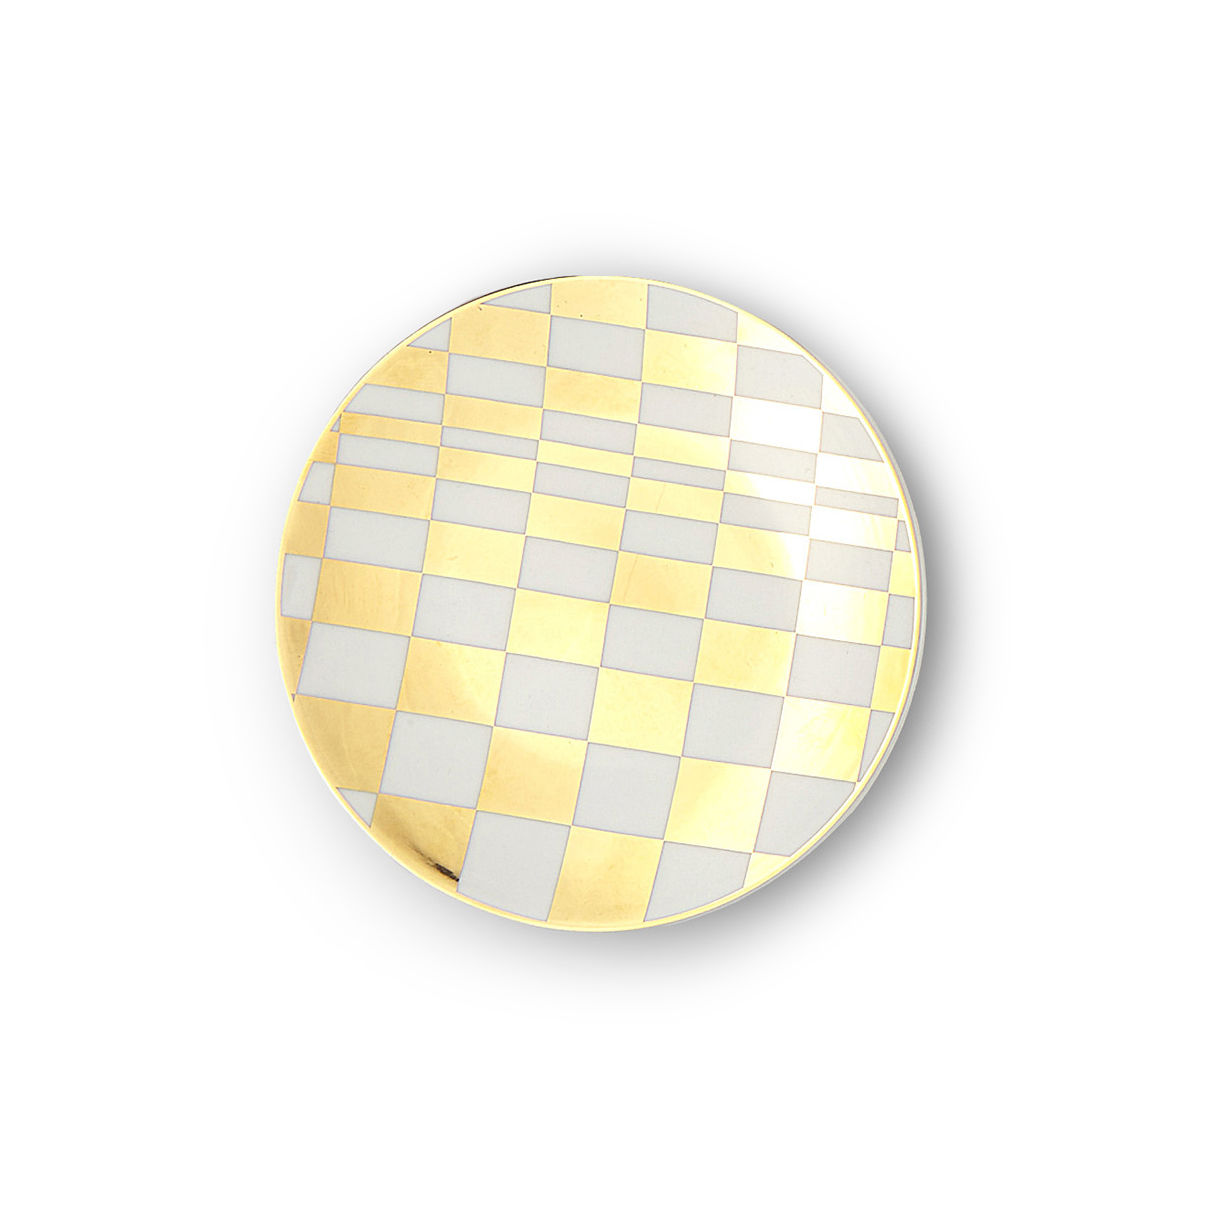 Tableware - Plates - Sibilla Petit fours plates - / Ø 12 cm by Bitossi Home - Grid pattern - China